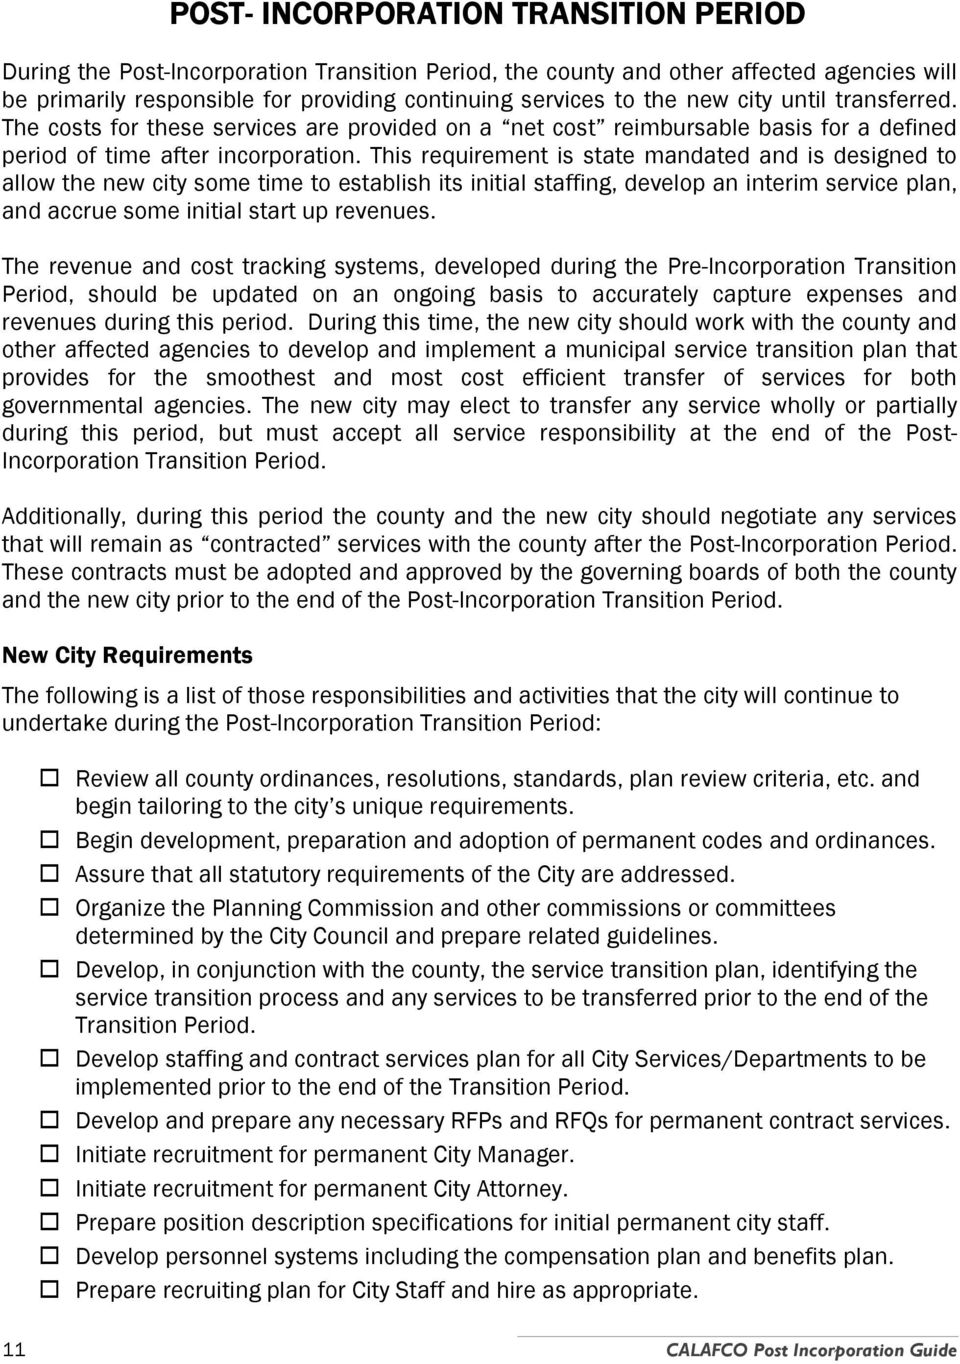 This requirement is state mandated and is designed to allow the new city some time to establish its initial staffing, develop an interim service plan, and accrue some initial start up revenues.